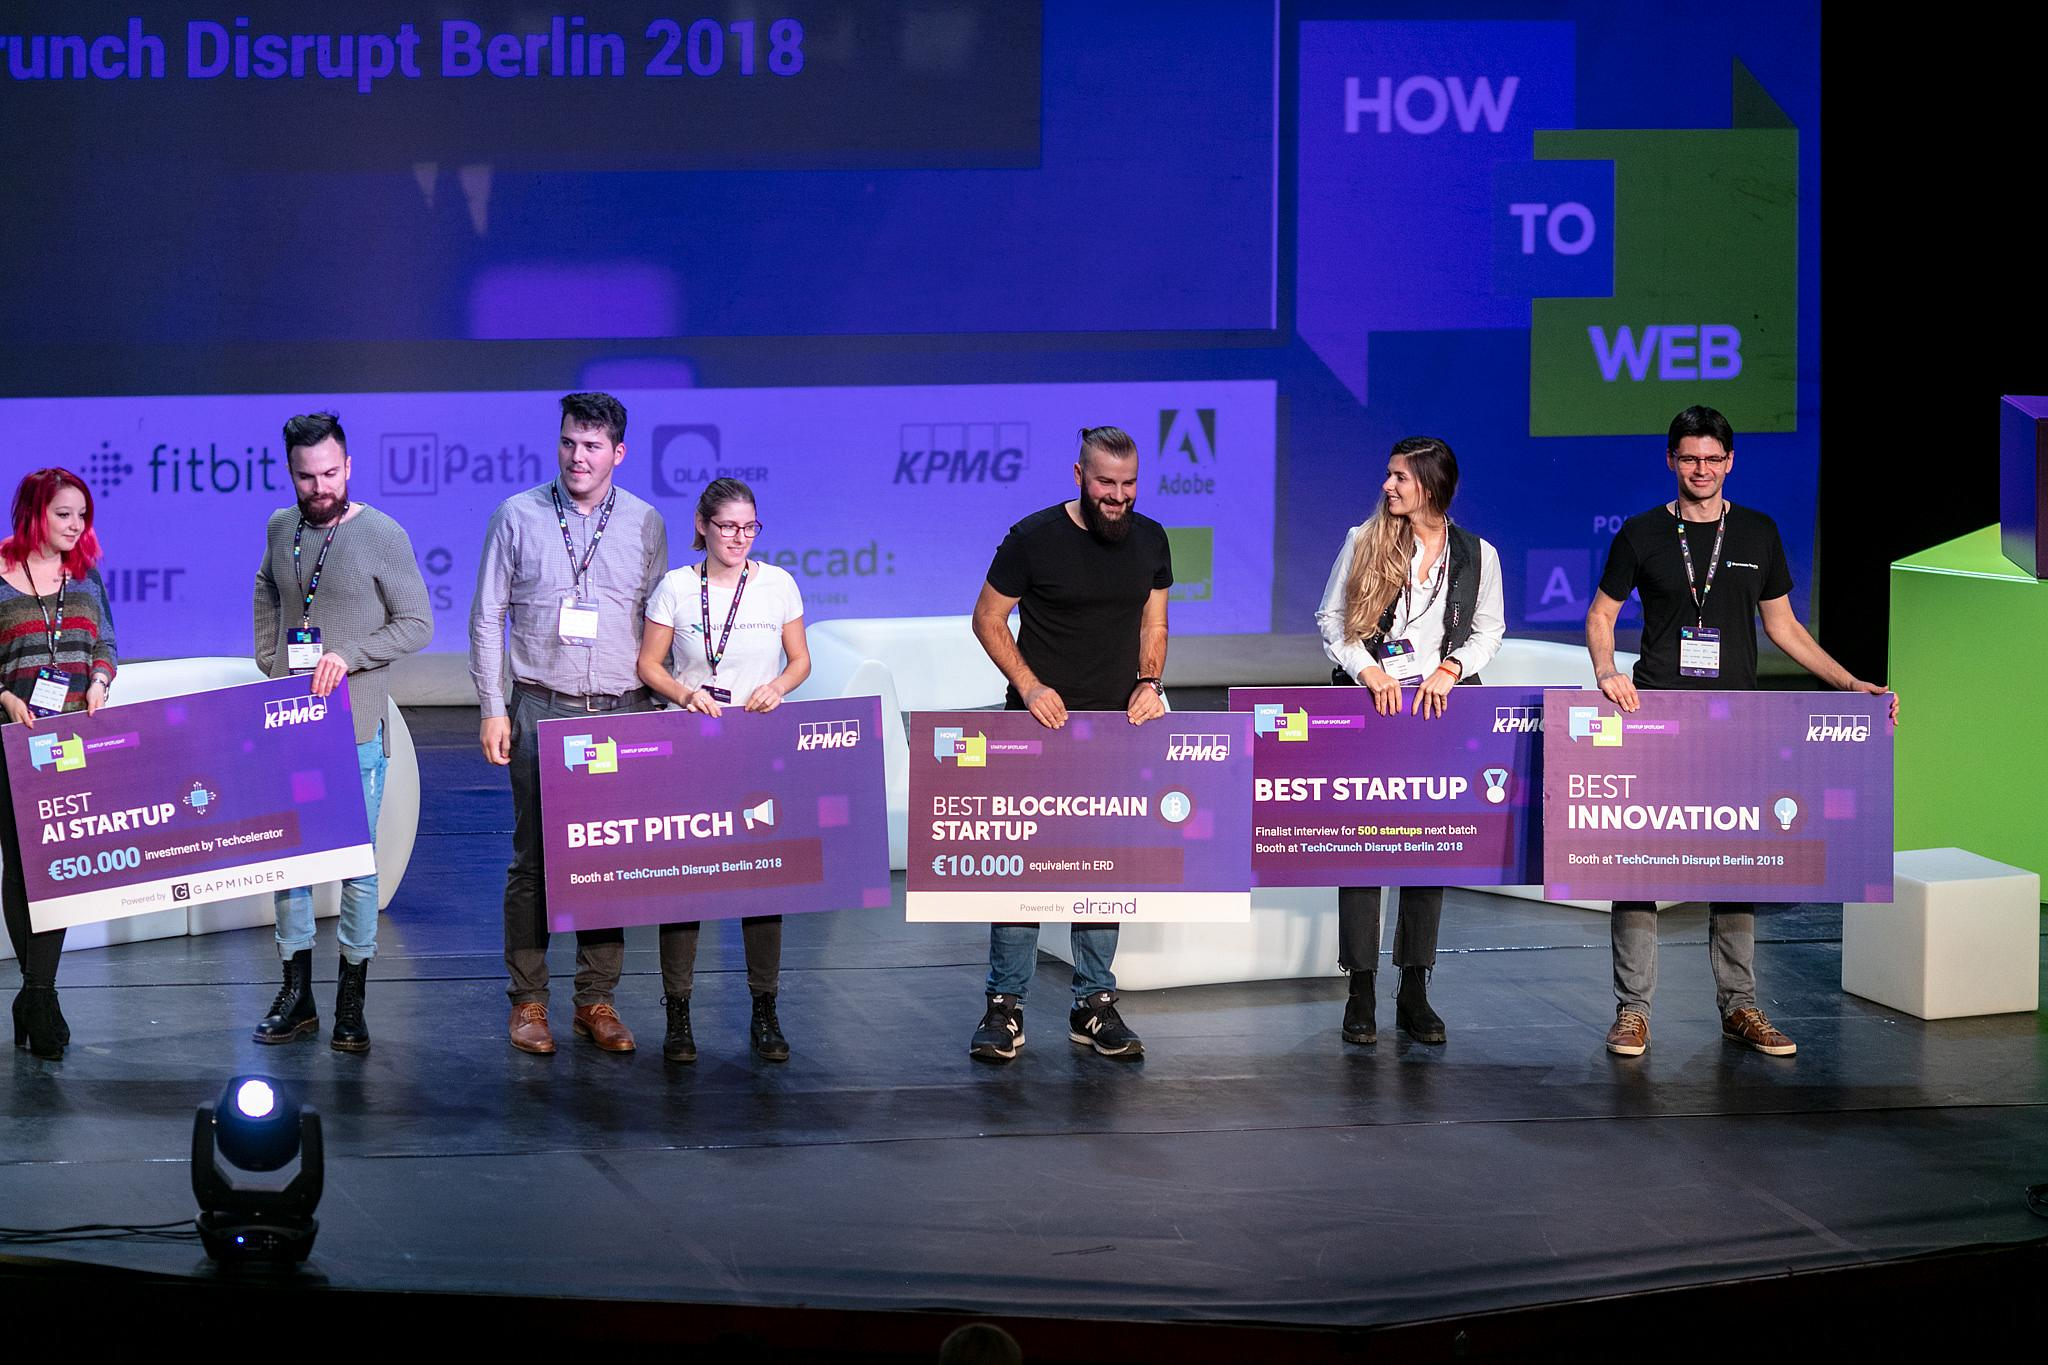 How to Web 2019: €125K for the best startup at Startup Spotlight